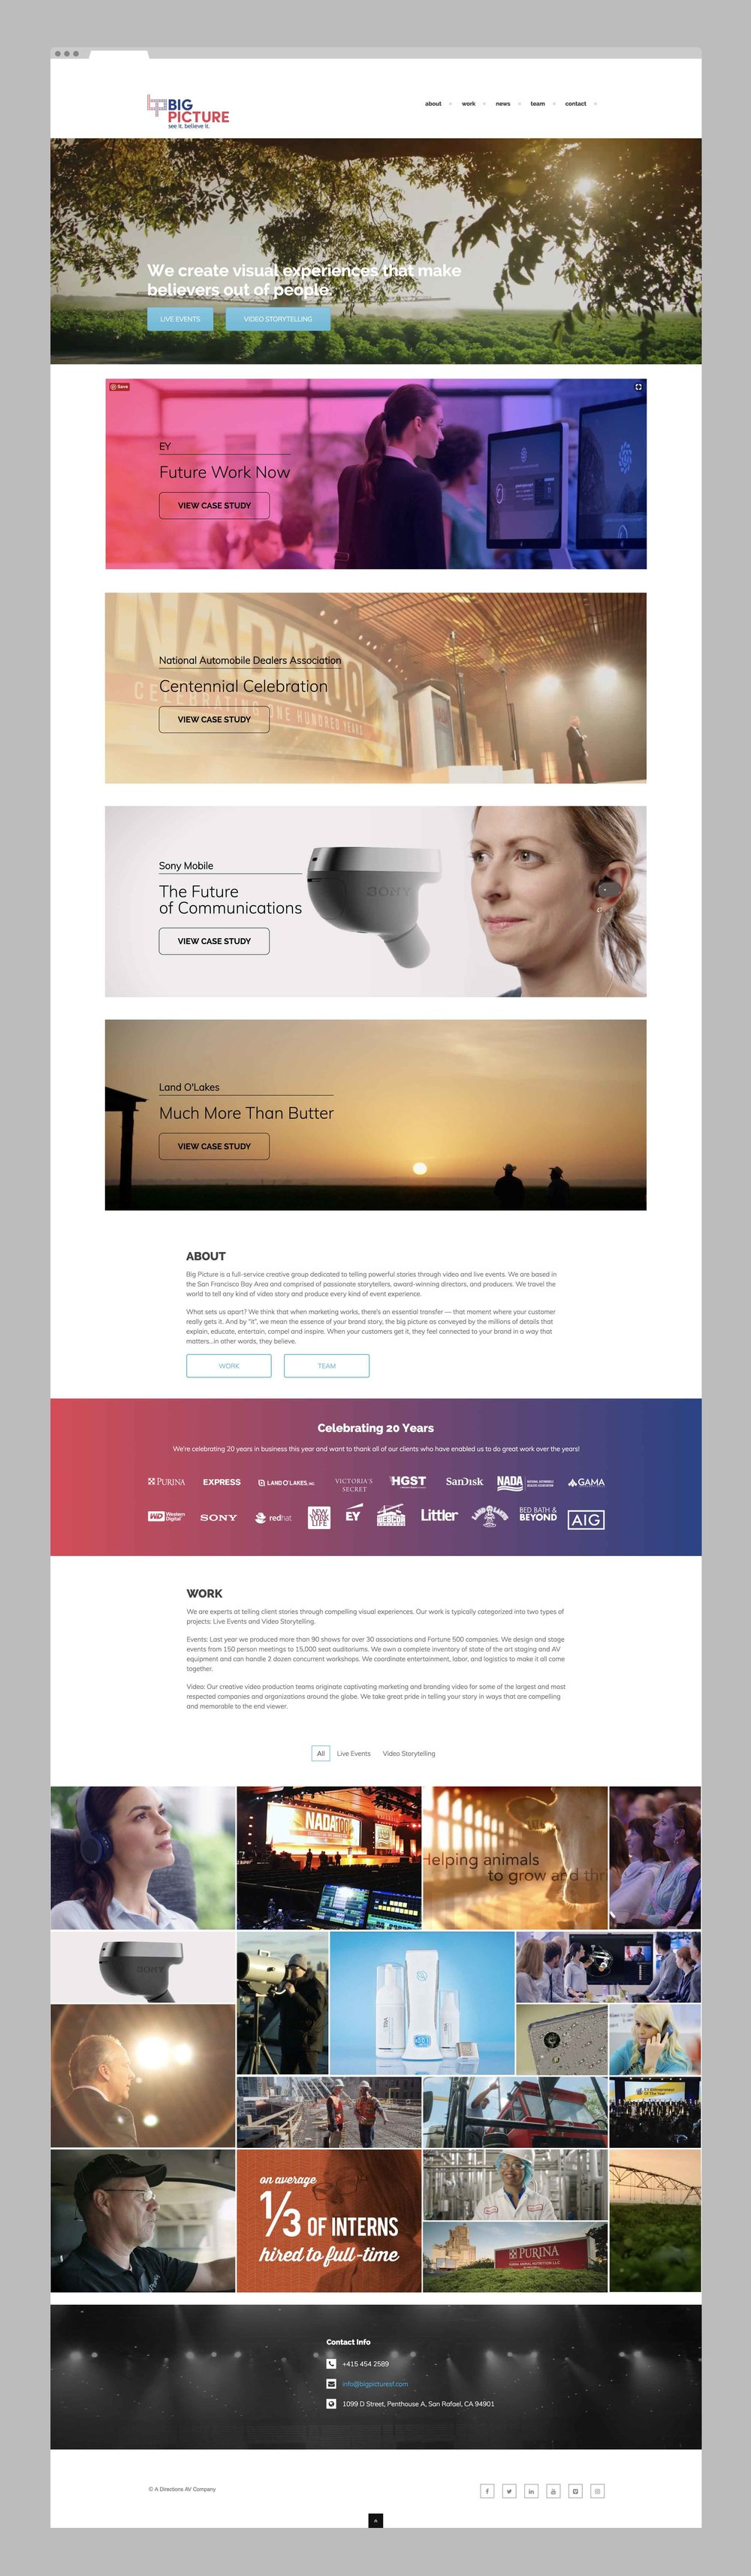 One page web design for the Big Picture brand who produces live events and does video story telling.